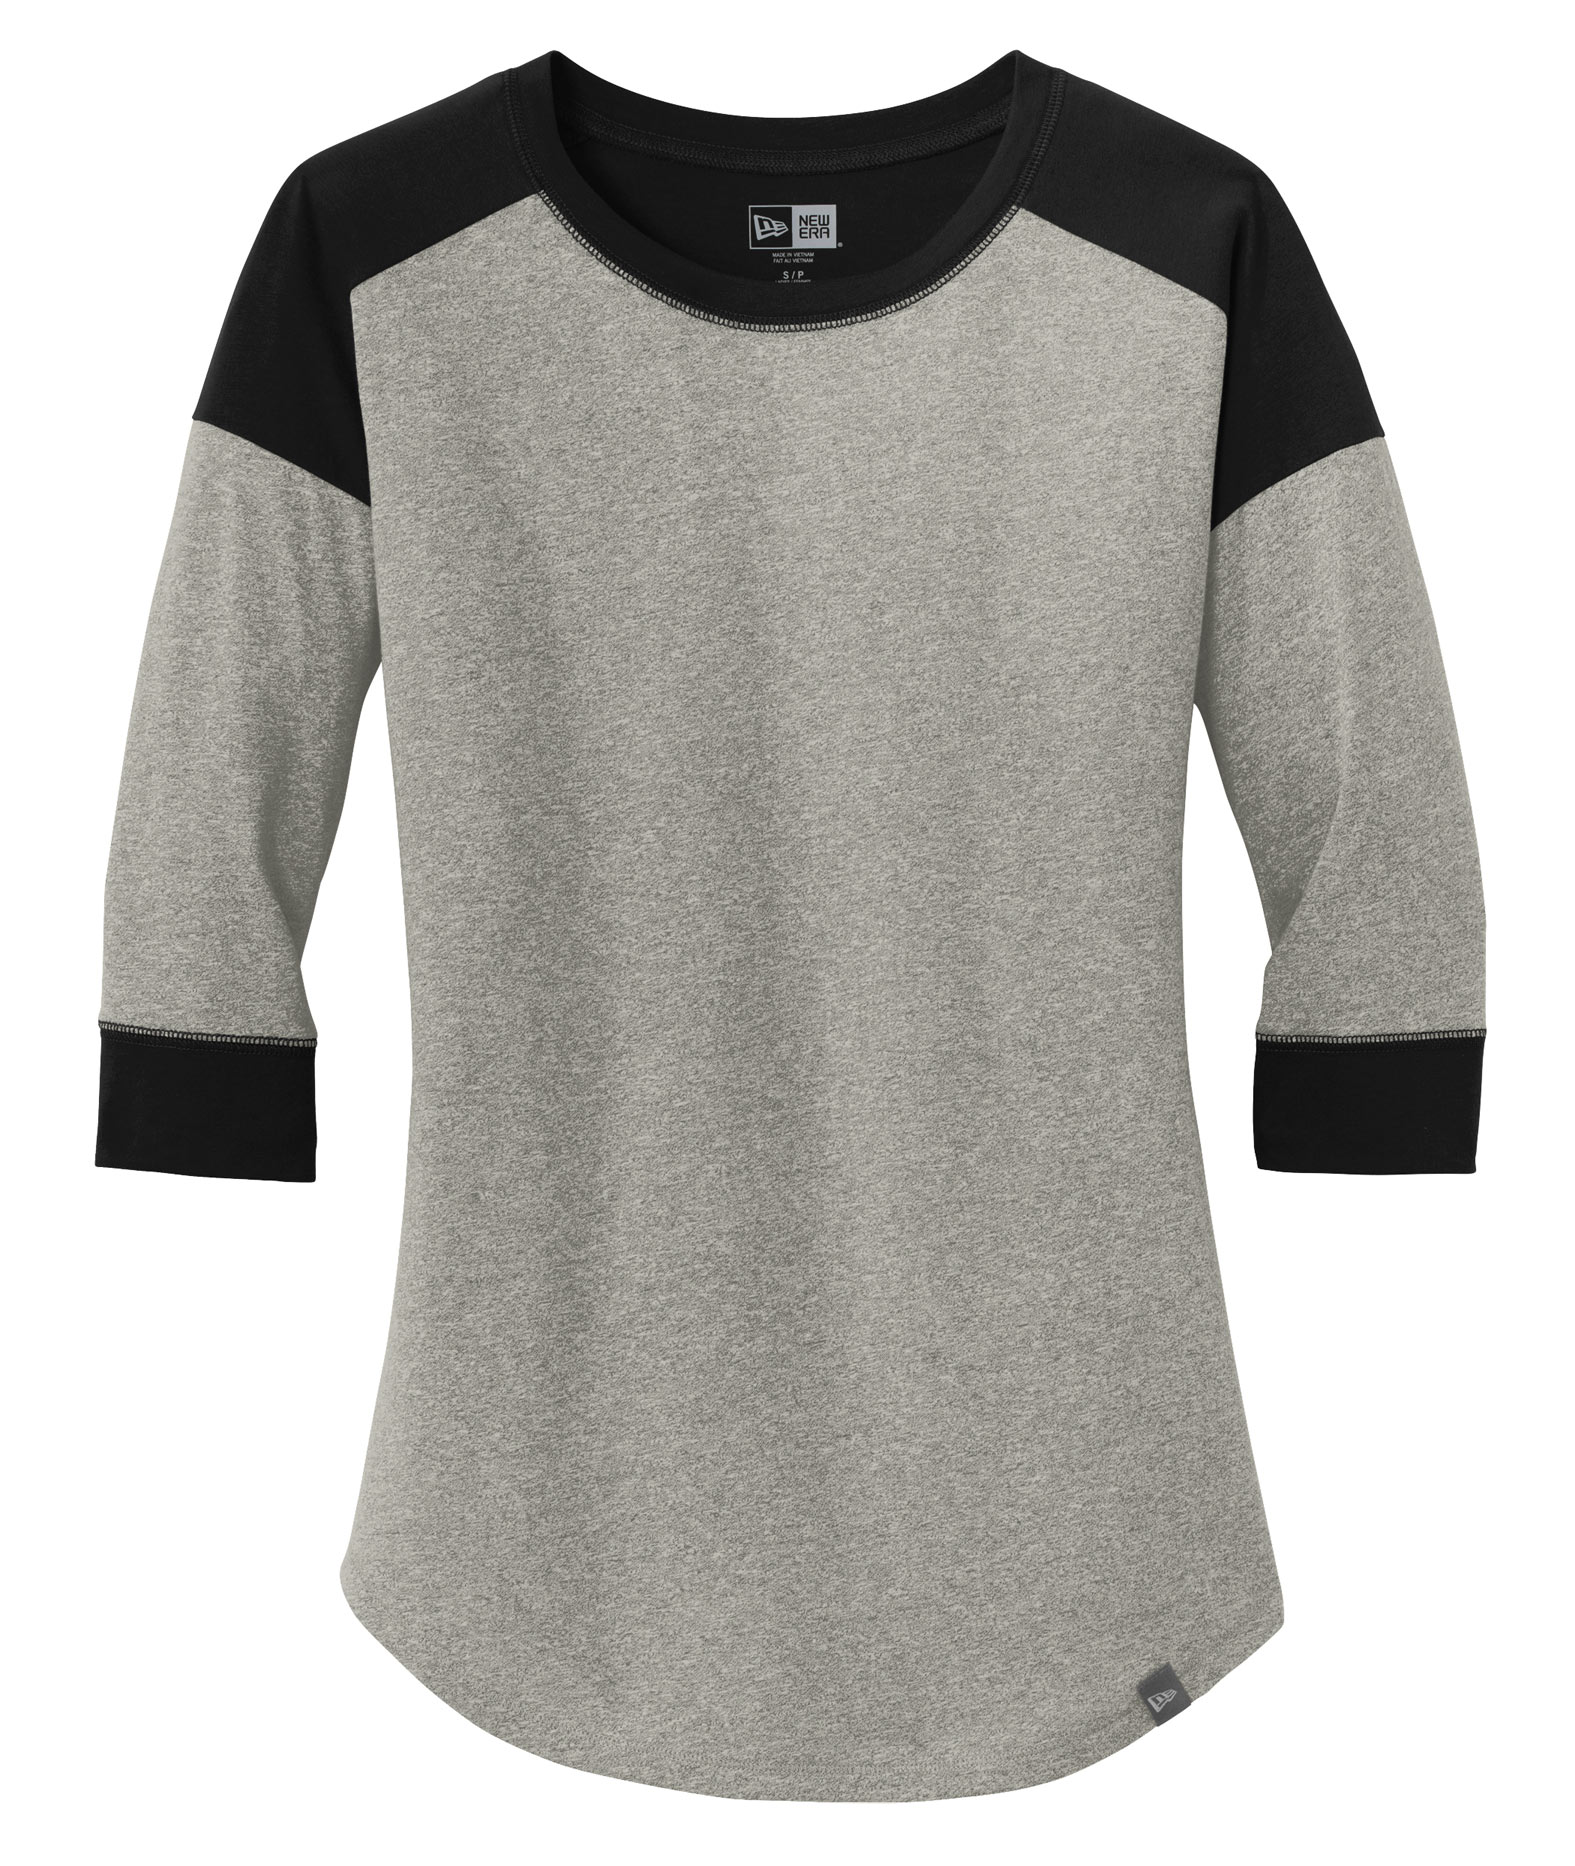 40b0b2f9894 Custom New Era® Ladies Heritage Blend 3 4 Sleeve Baseball Raglan Tee